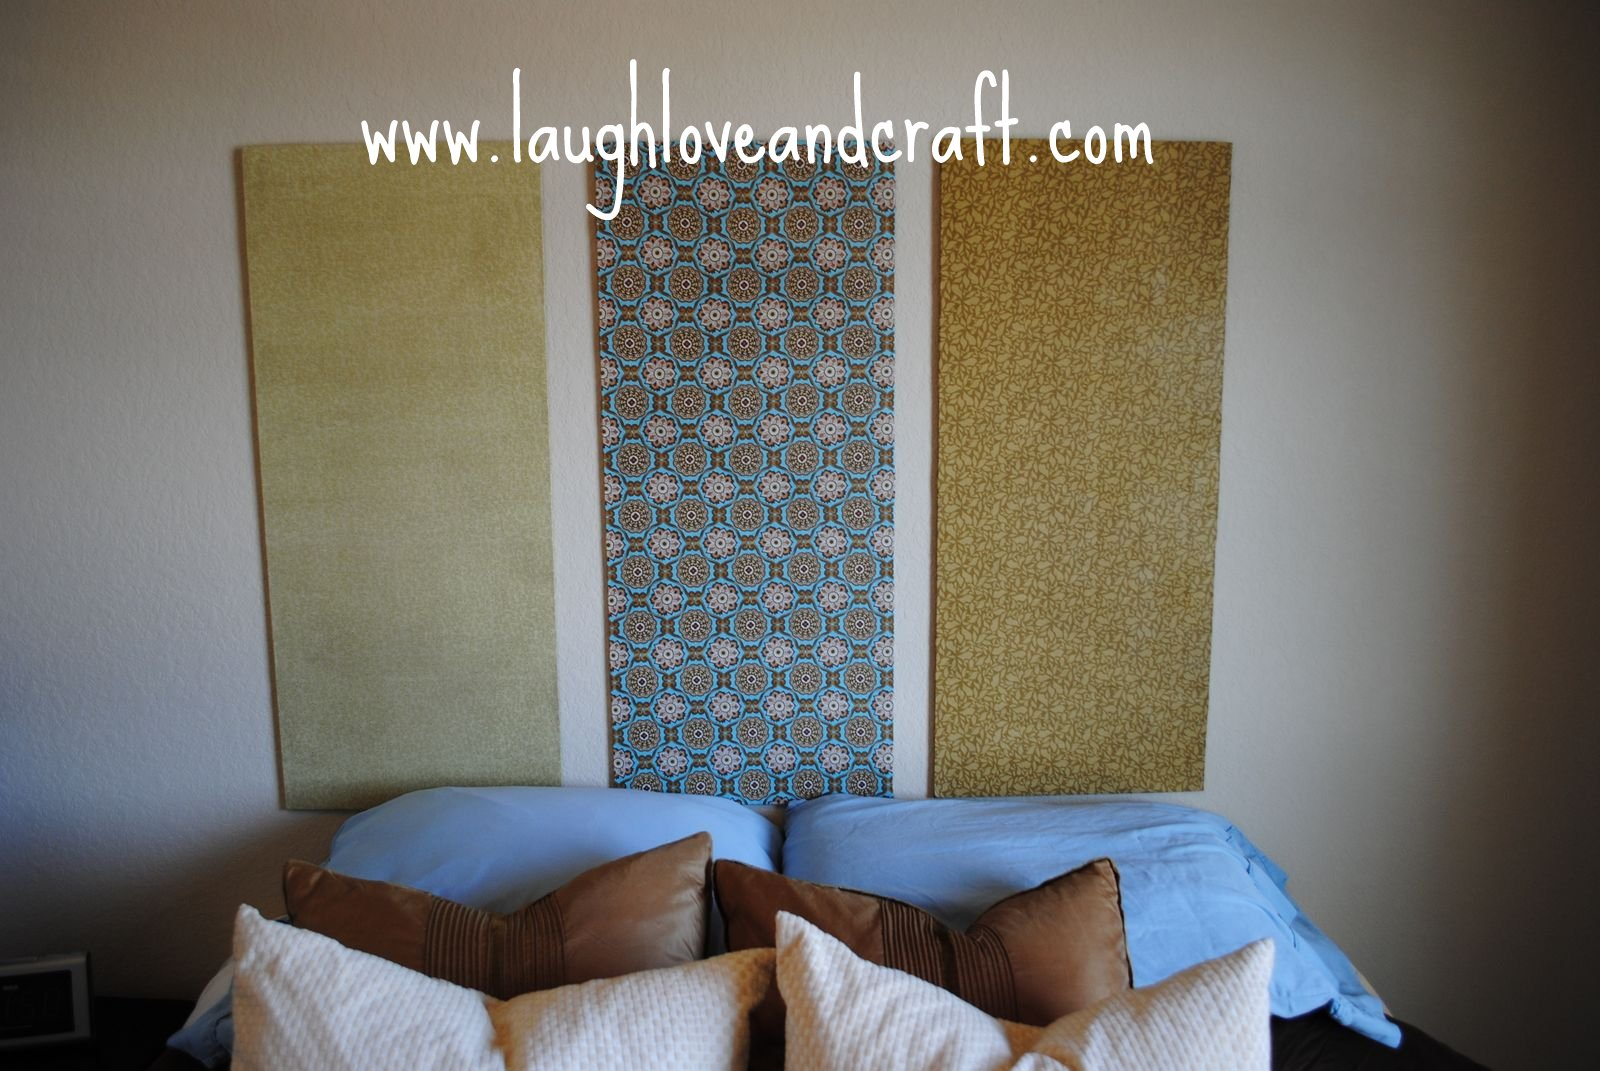 Laugh Love And Craft DIY Backboard For The Guest Bedroom